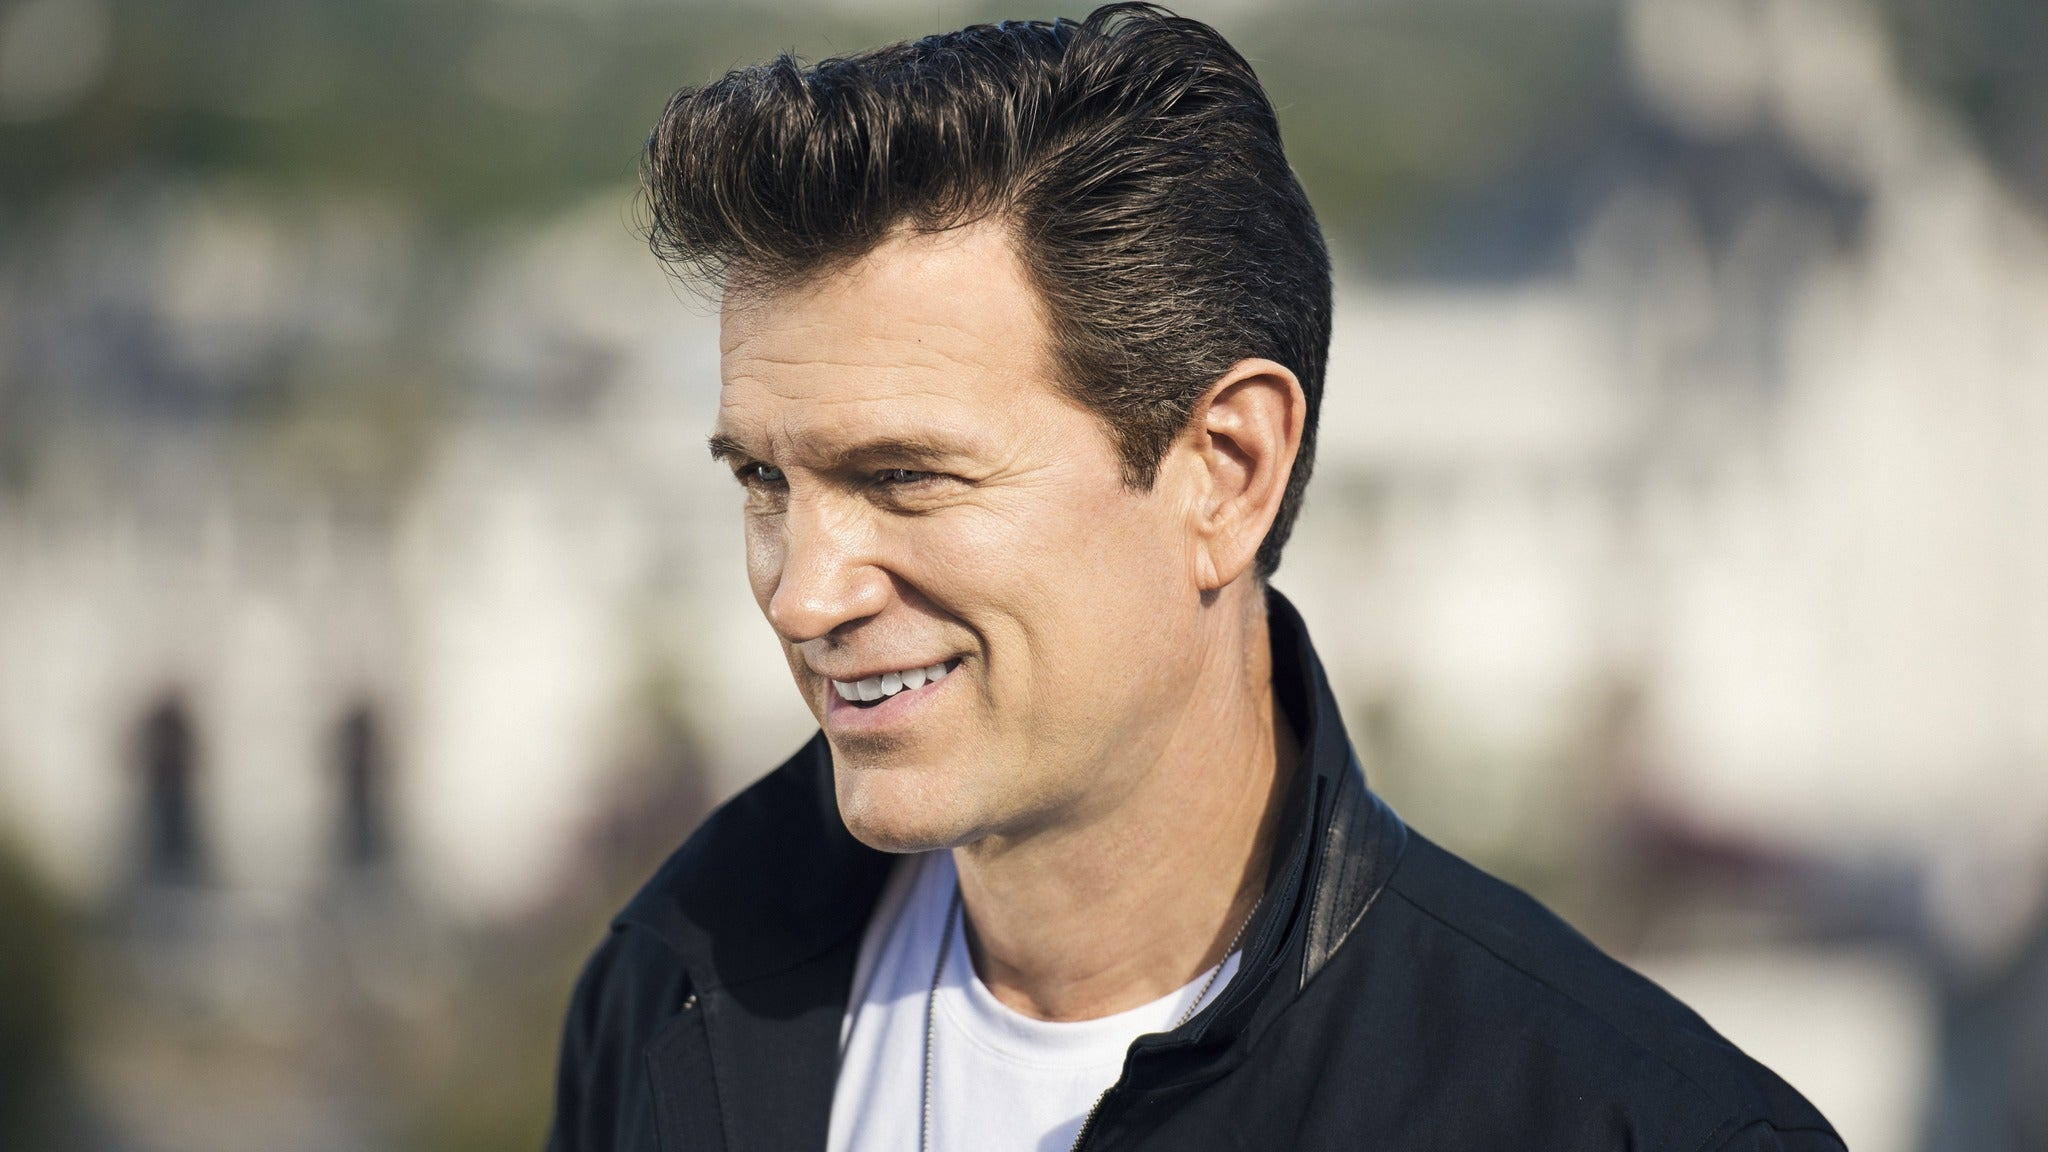 Chris Isaak - Meet & Greet Packages at Thornton Winery